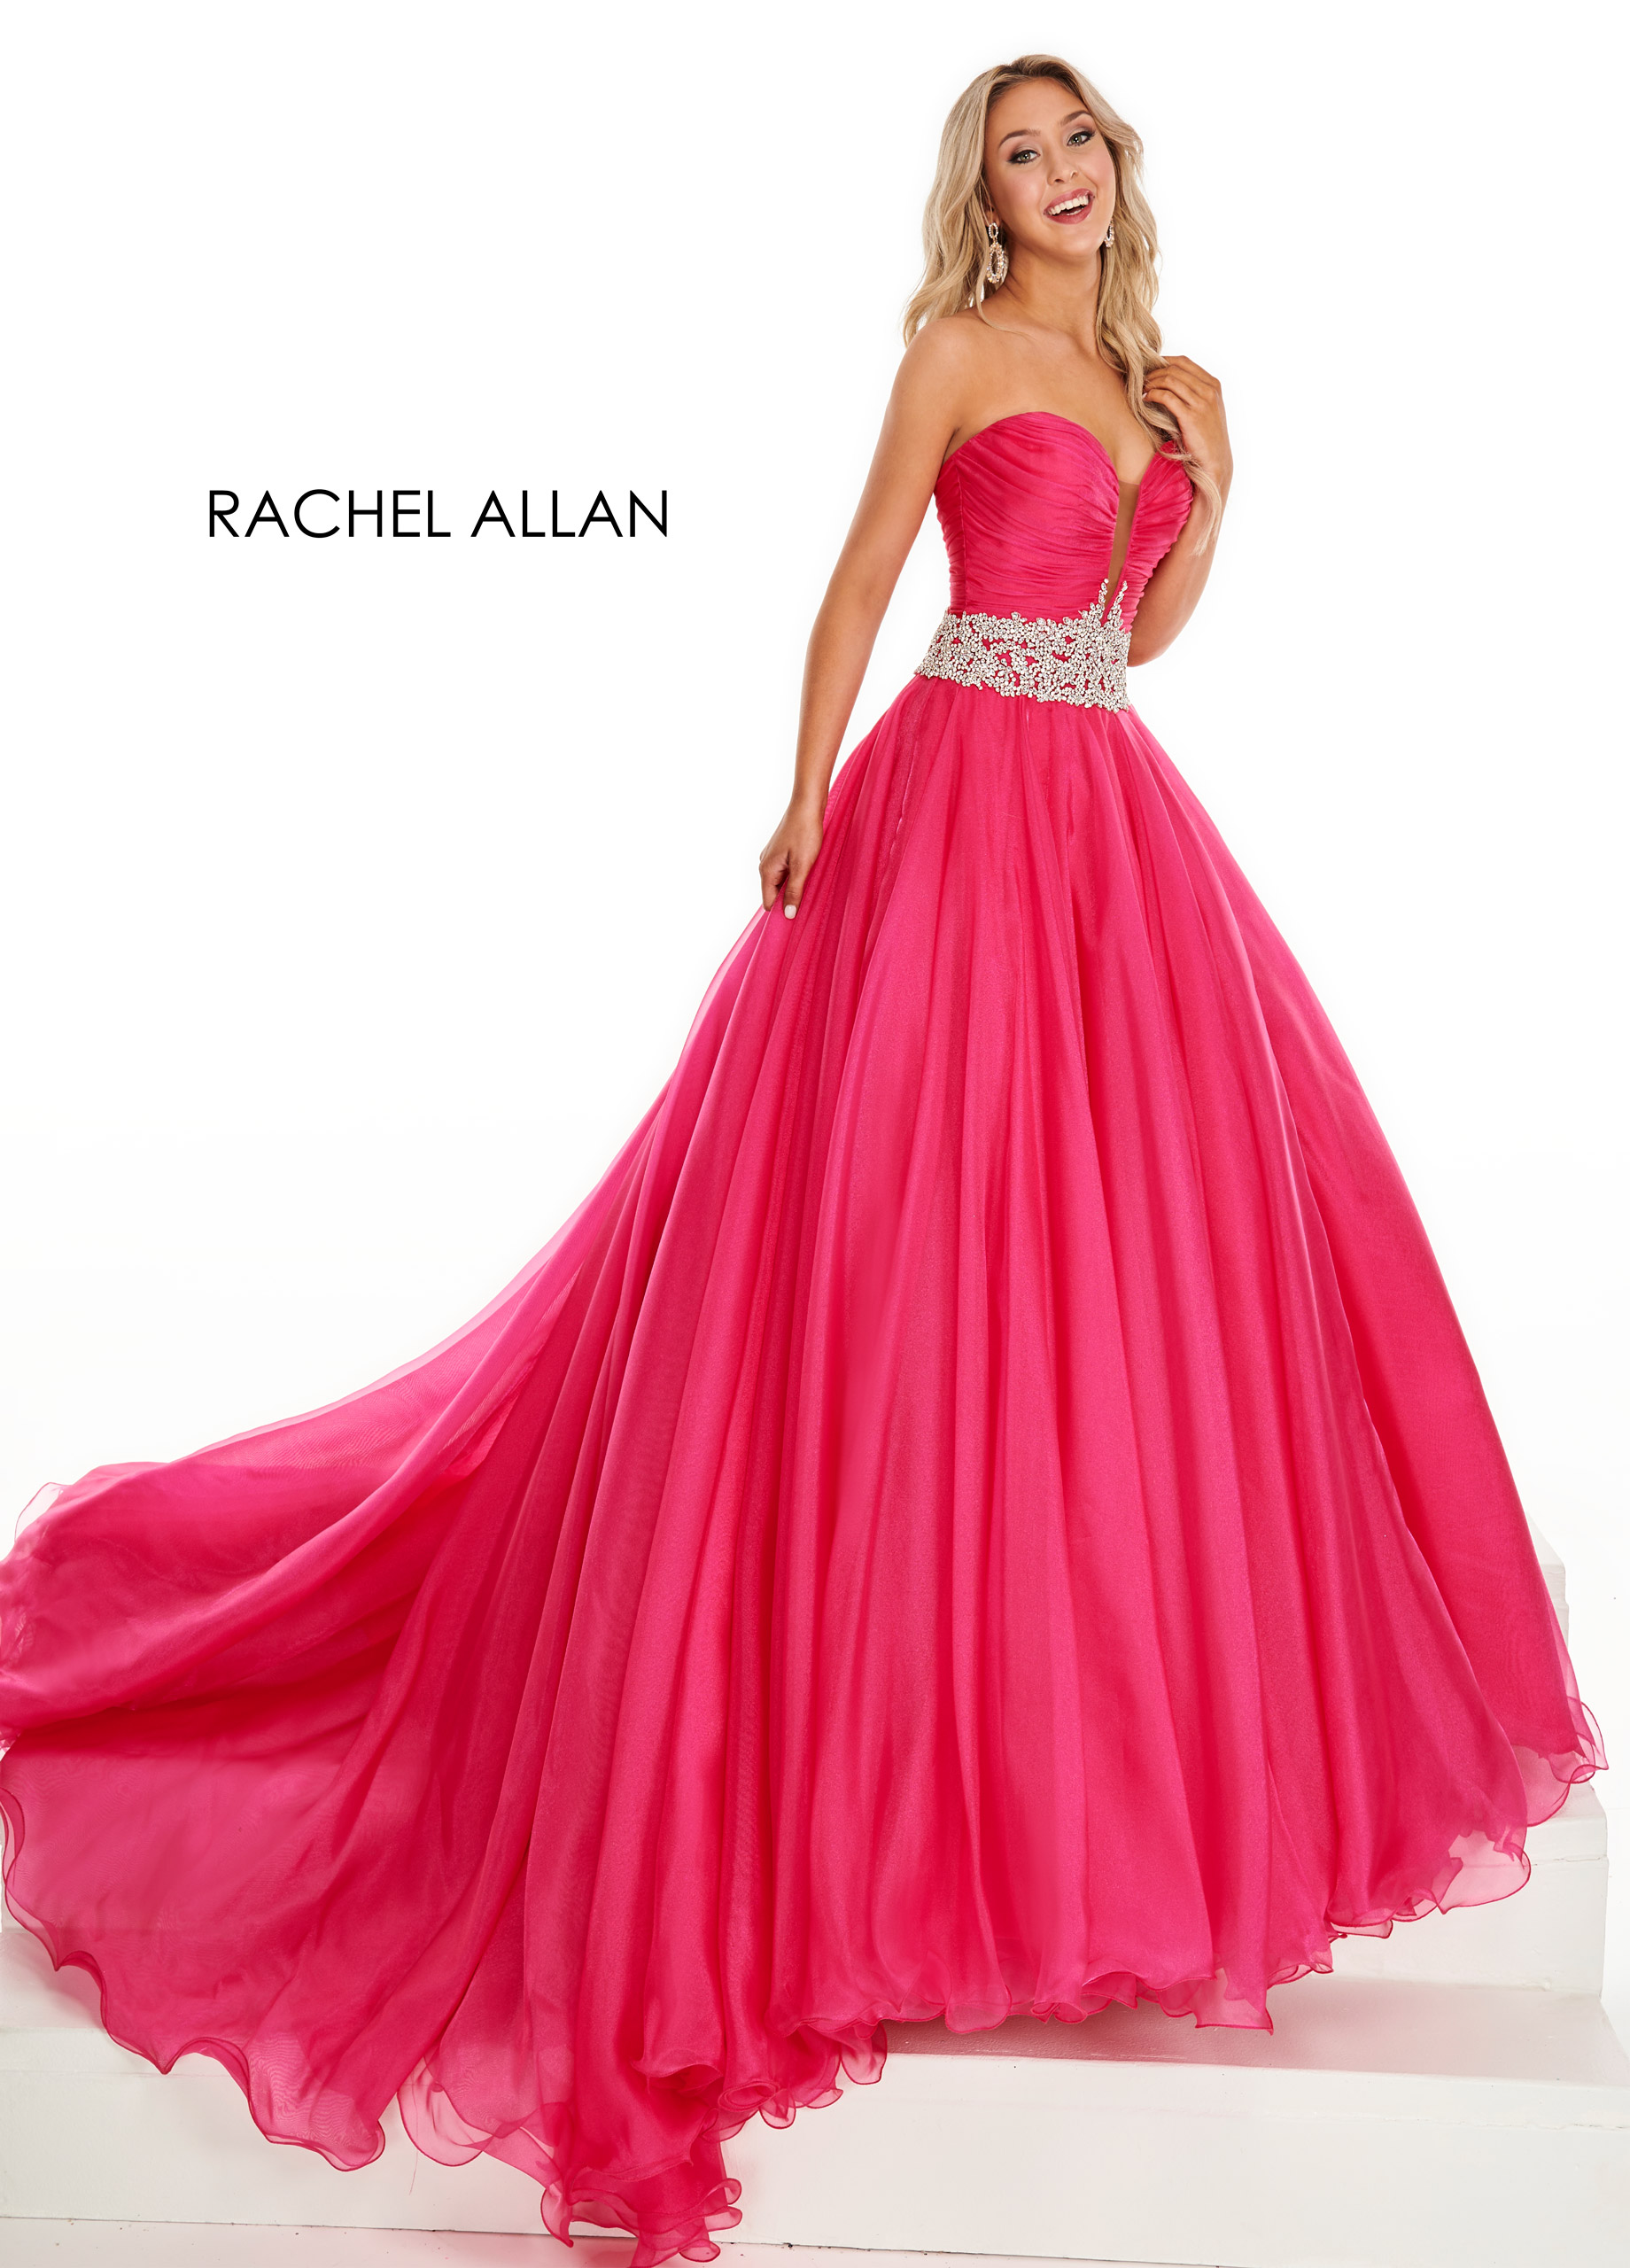 Sweetheart Ball Gowns Pageant Dresses in Fuchsia Color